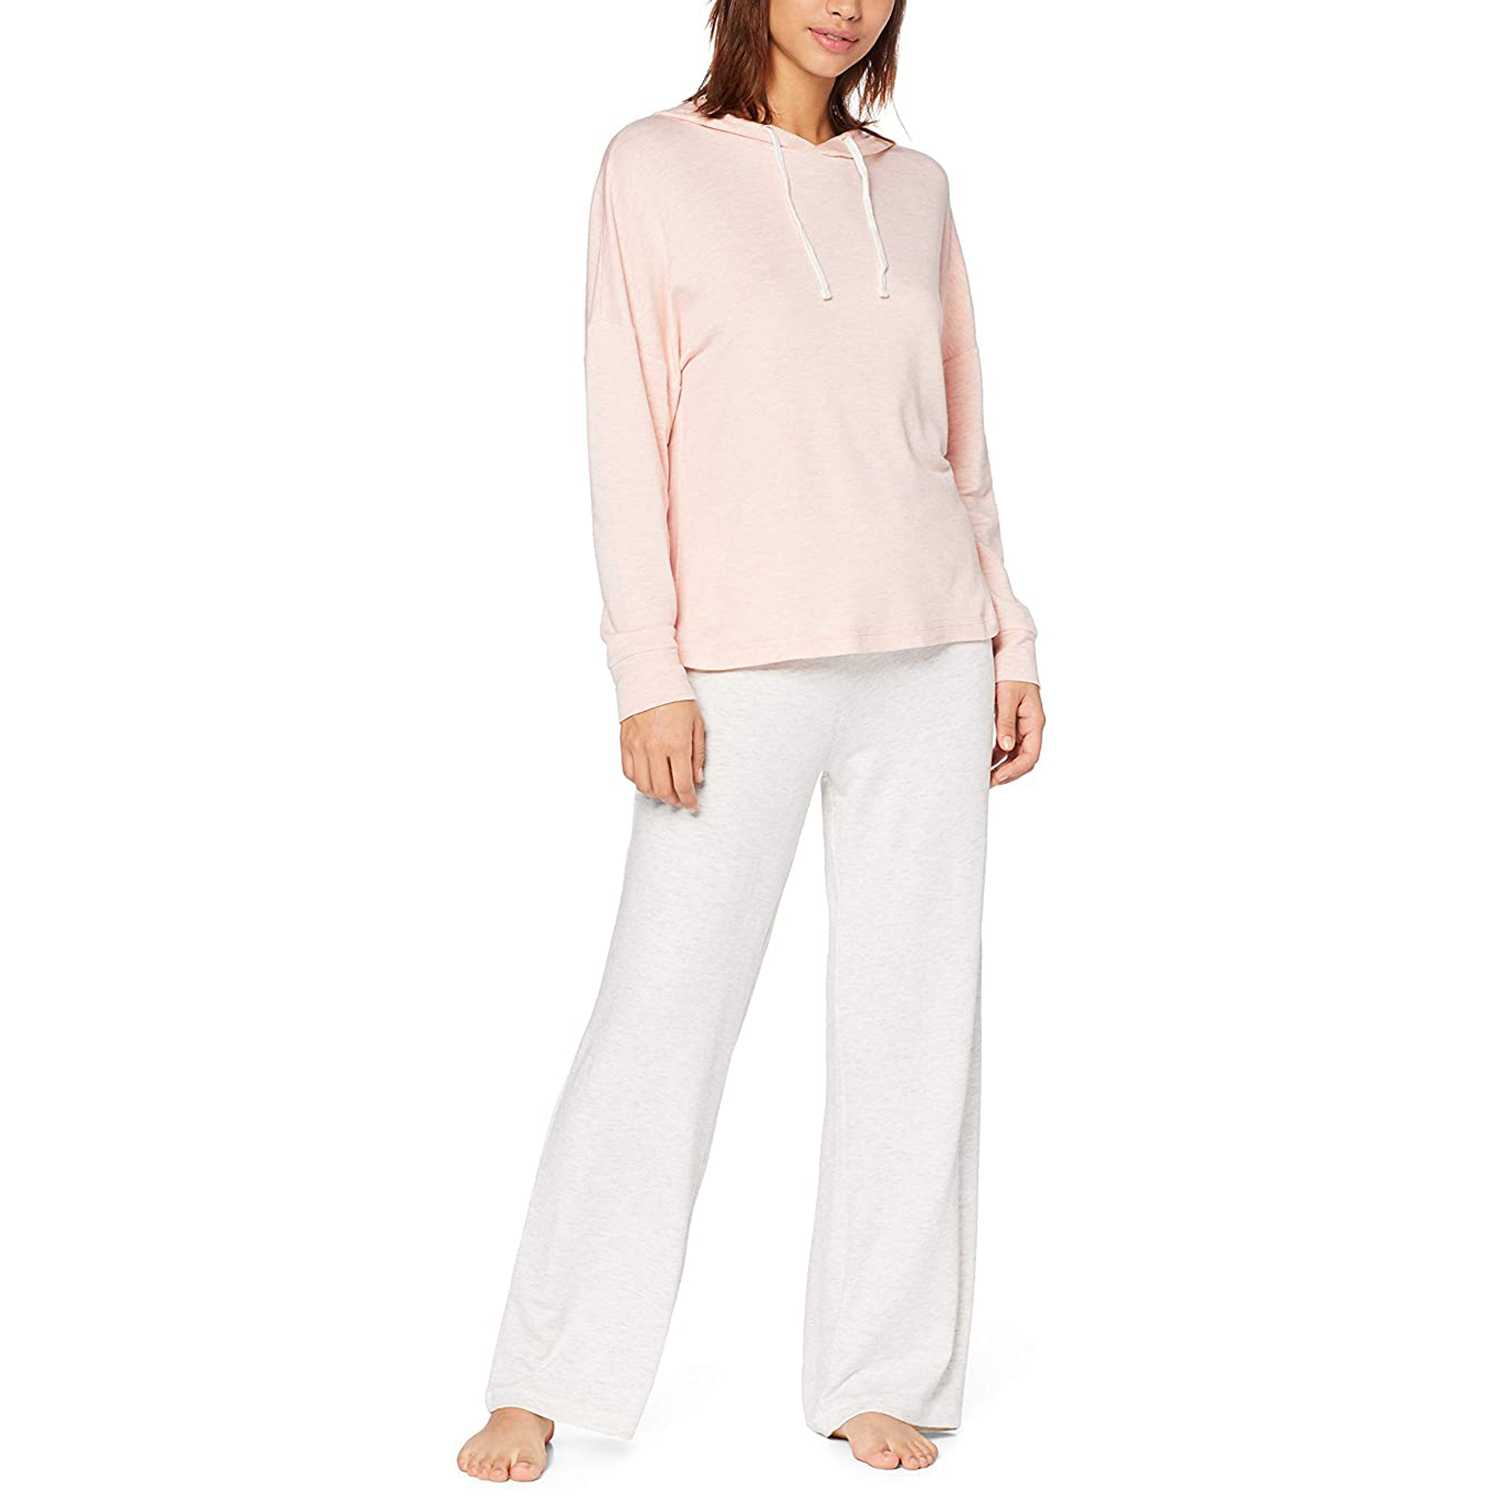 Iris and Lilly Women's Hoodie and Jogger Set